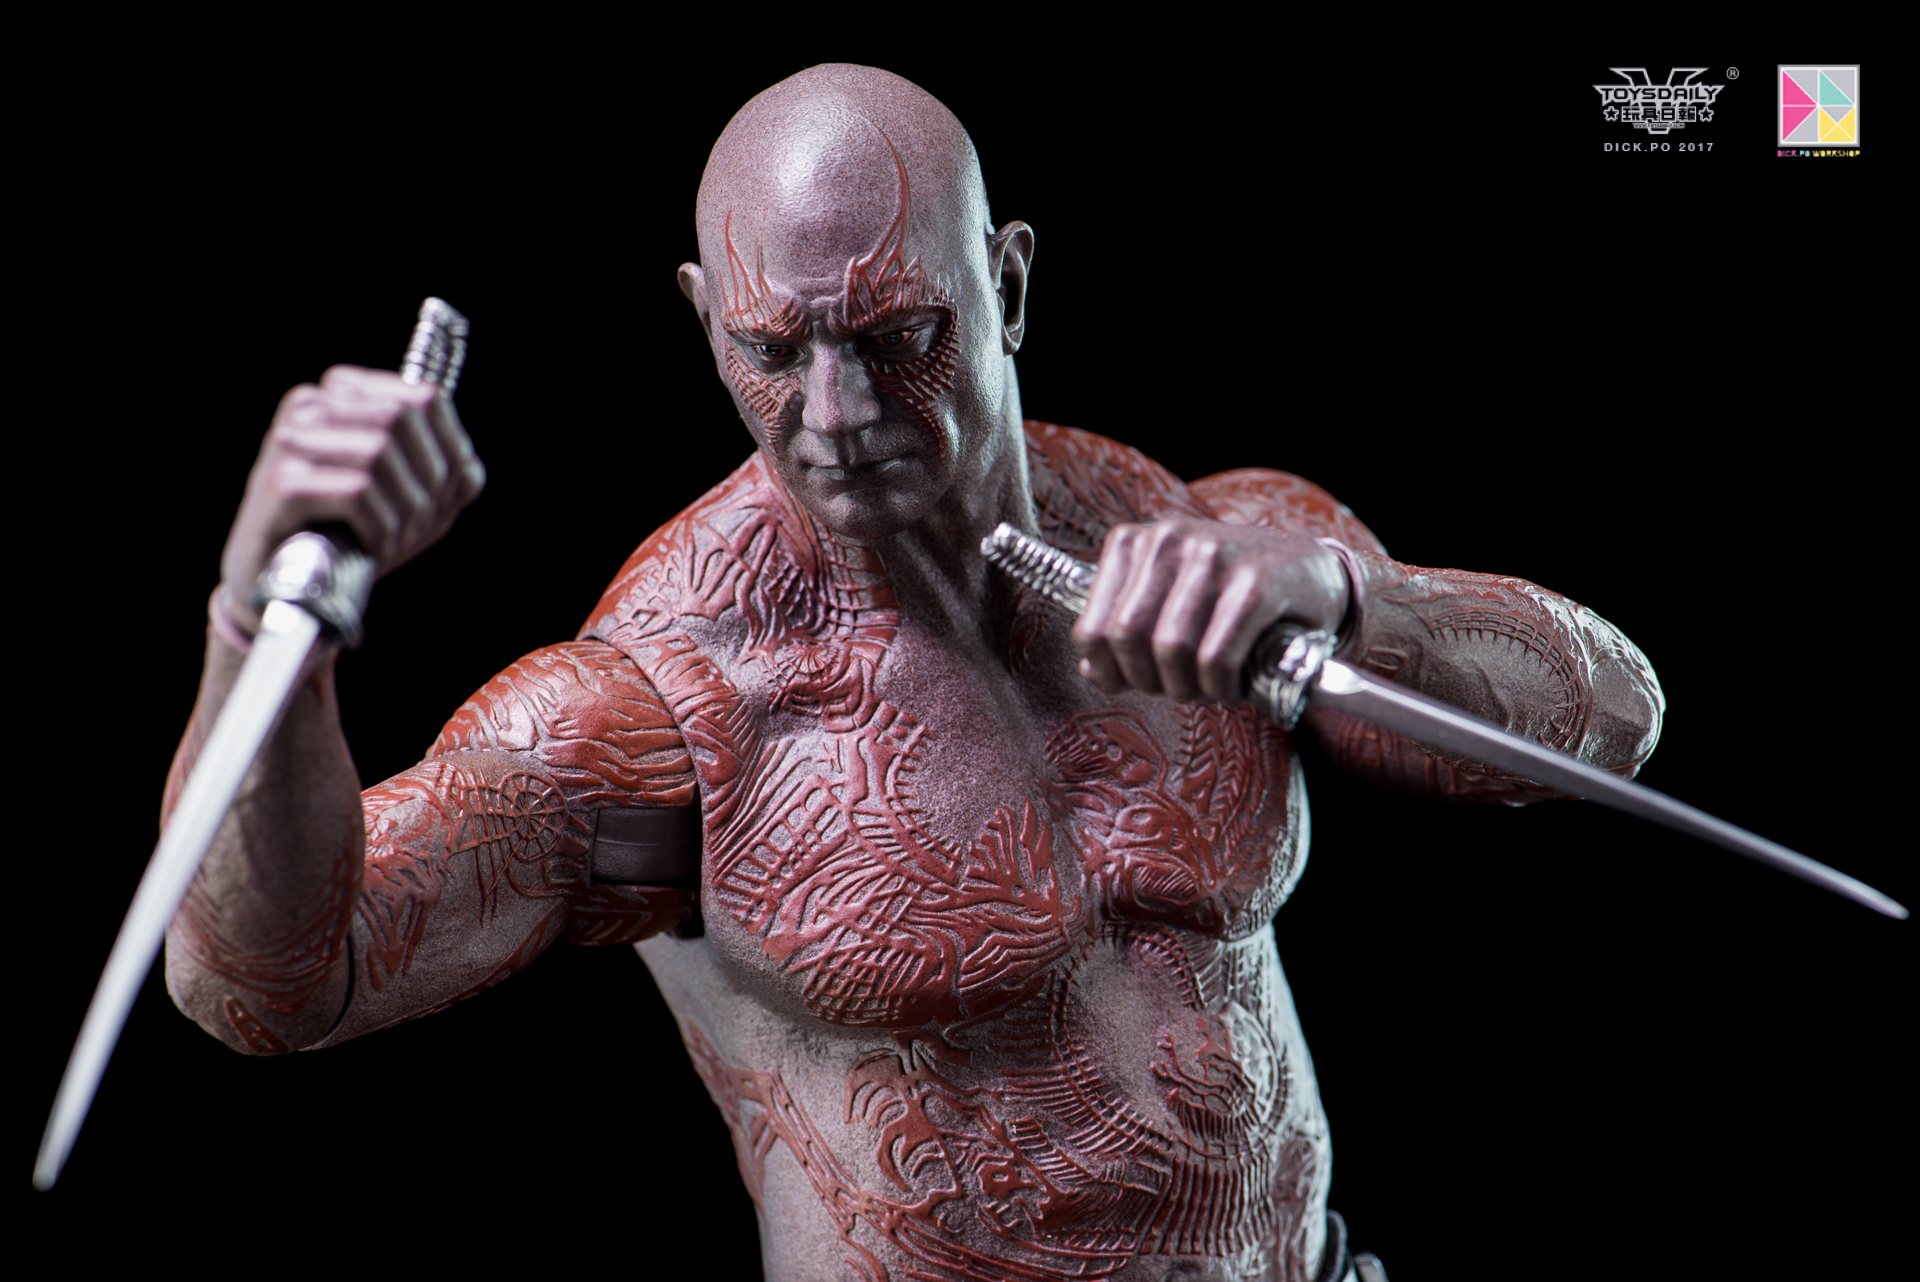 toysdaily_dick.po_Hottoys_DARX-29.jpg